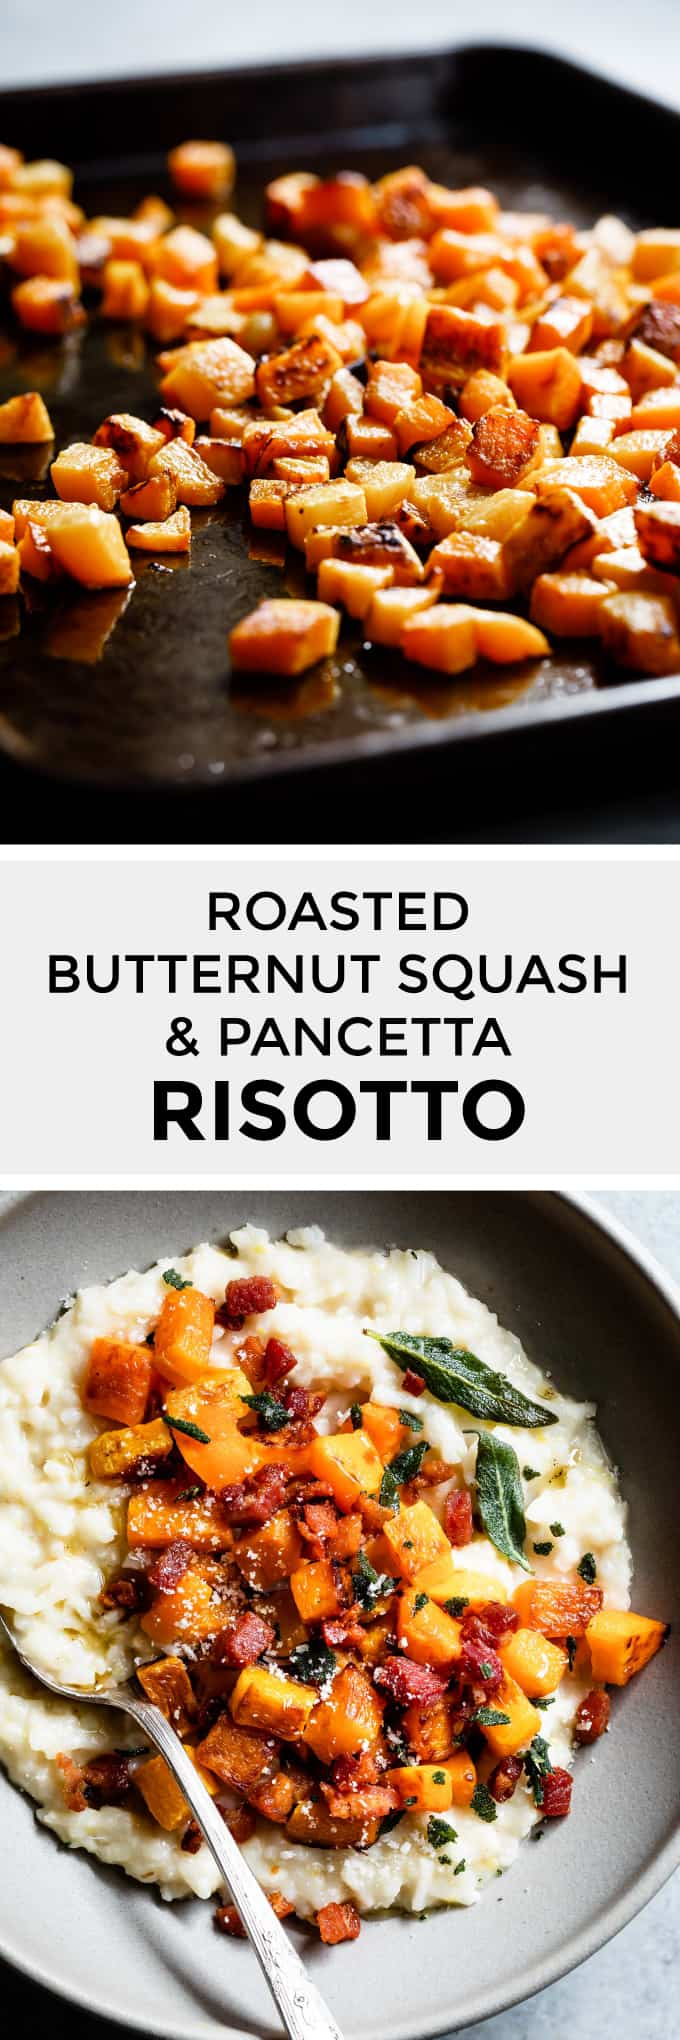 Roasted Butternut & Pancetta Risotto with Sage Oil